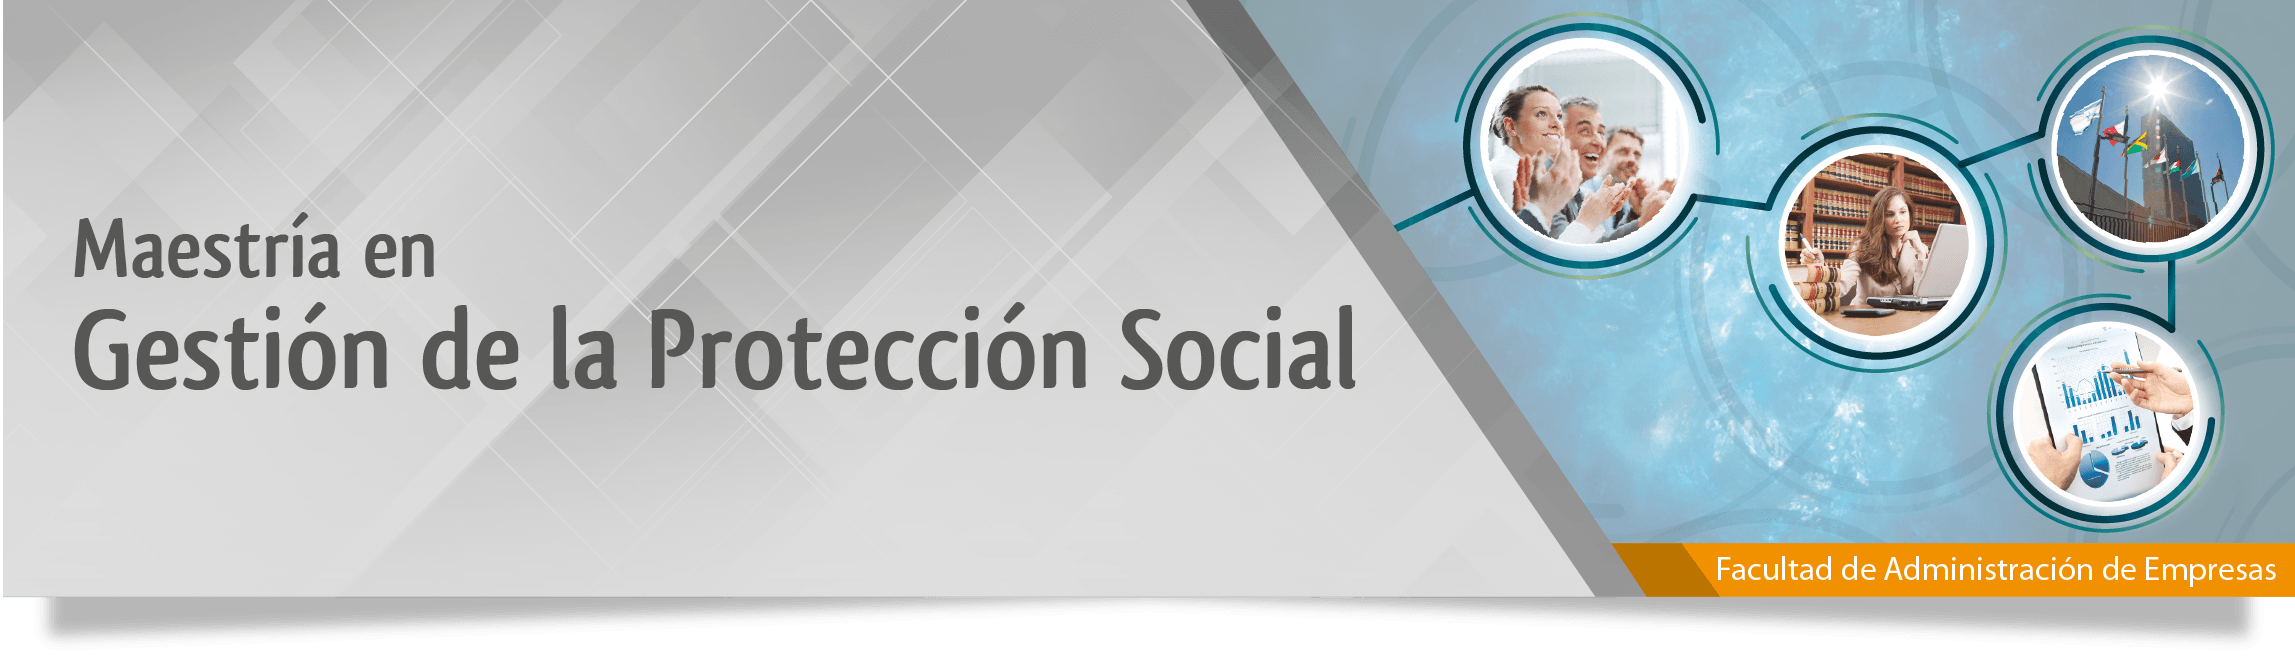 Gestion de la Proteccion Social